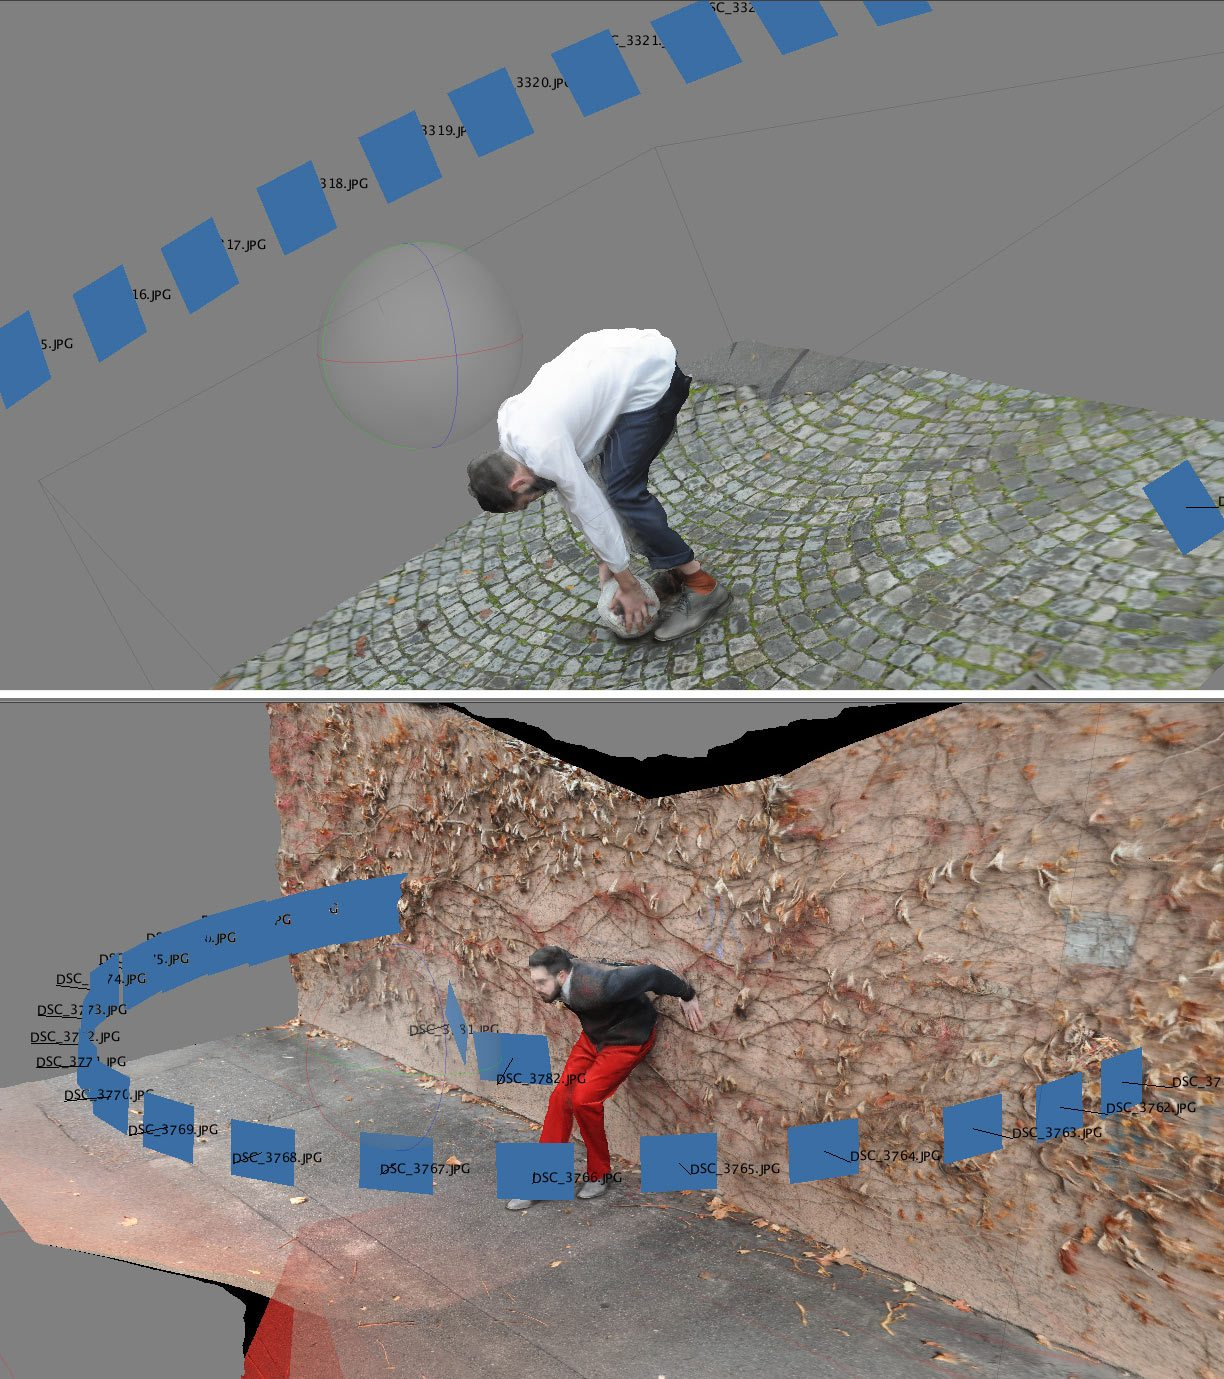 The photogrammetry build from PhotoScan shows the positions where the stills used to produce the 3D model were taken from.